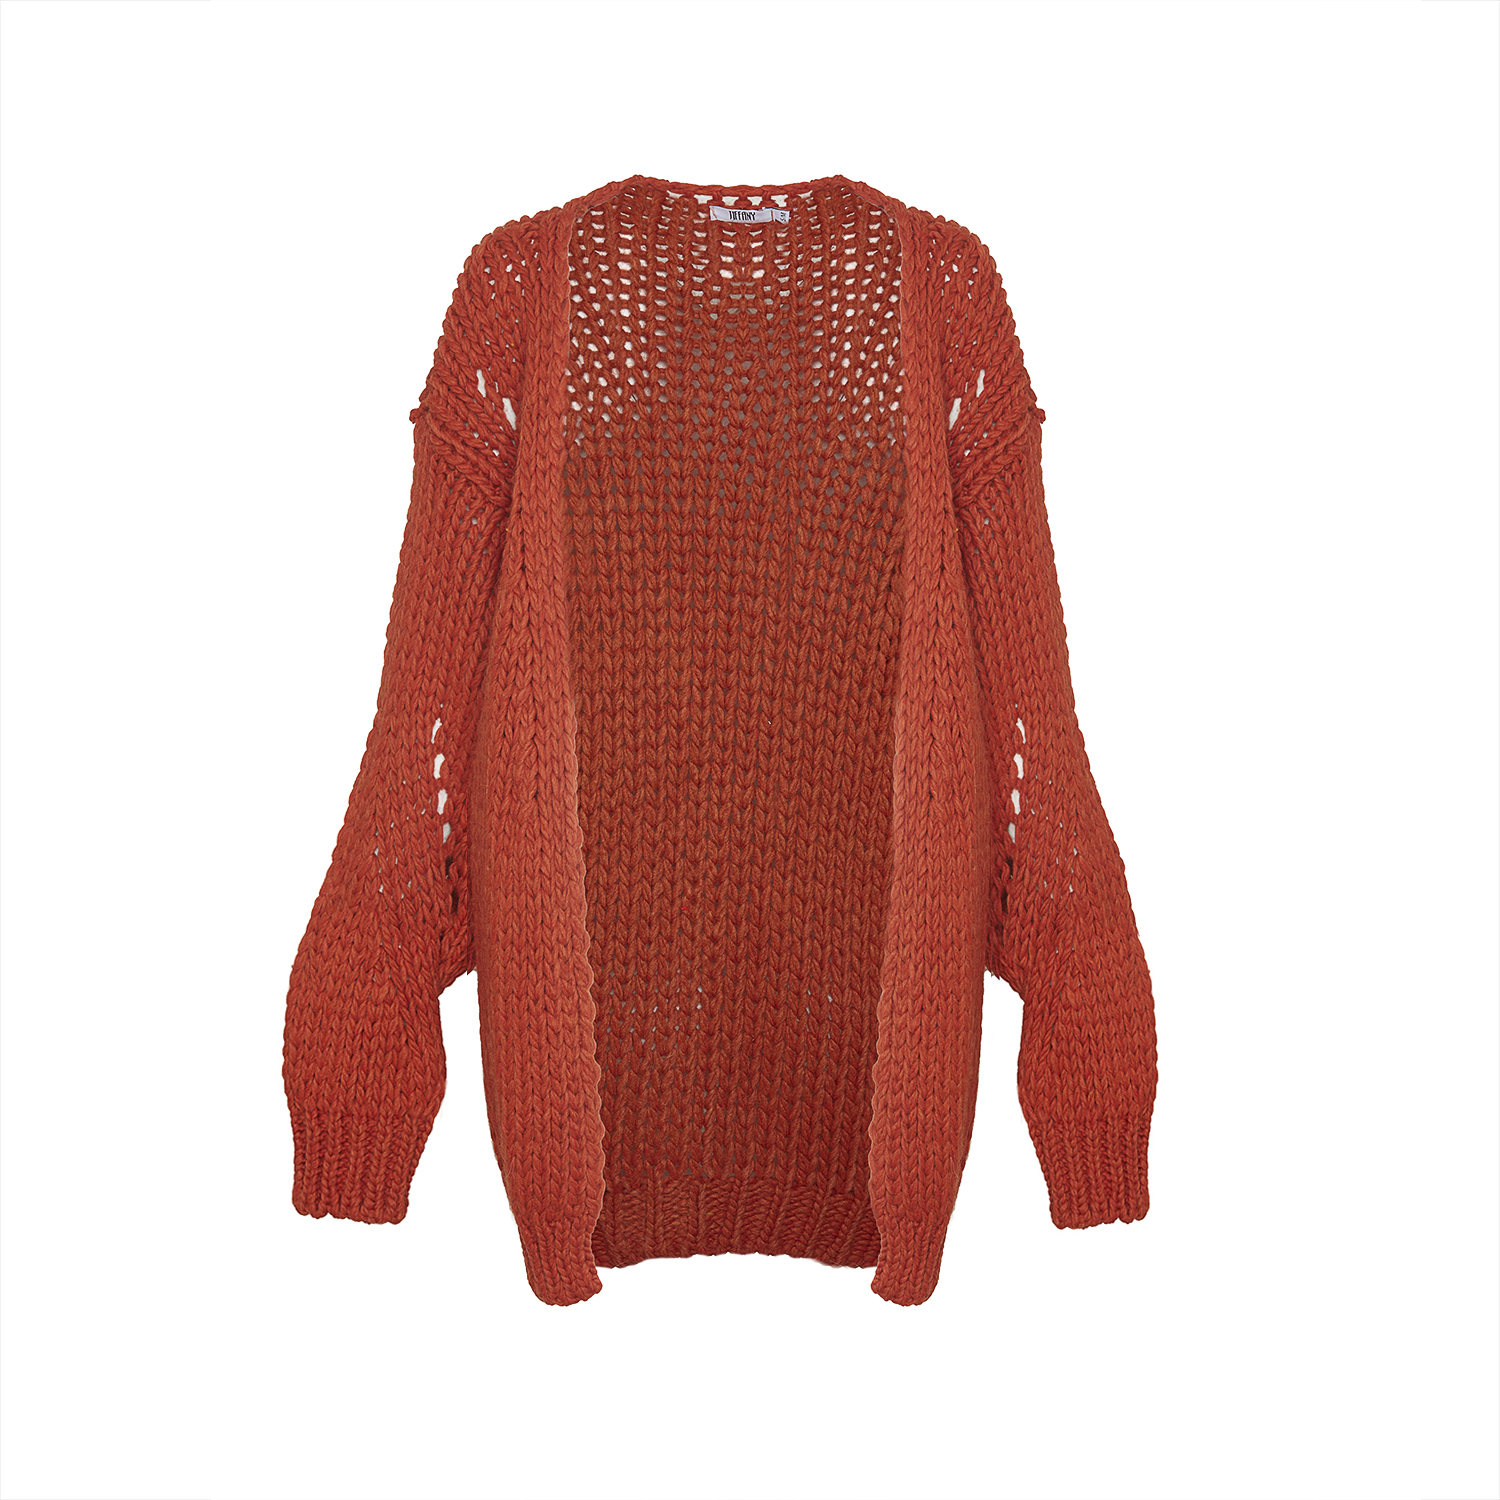 Tiffany 3211 Cardigan, Rust